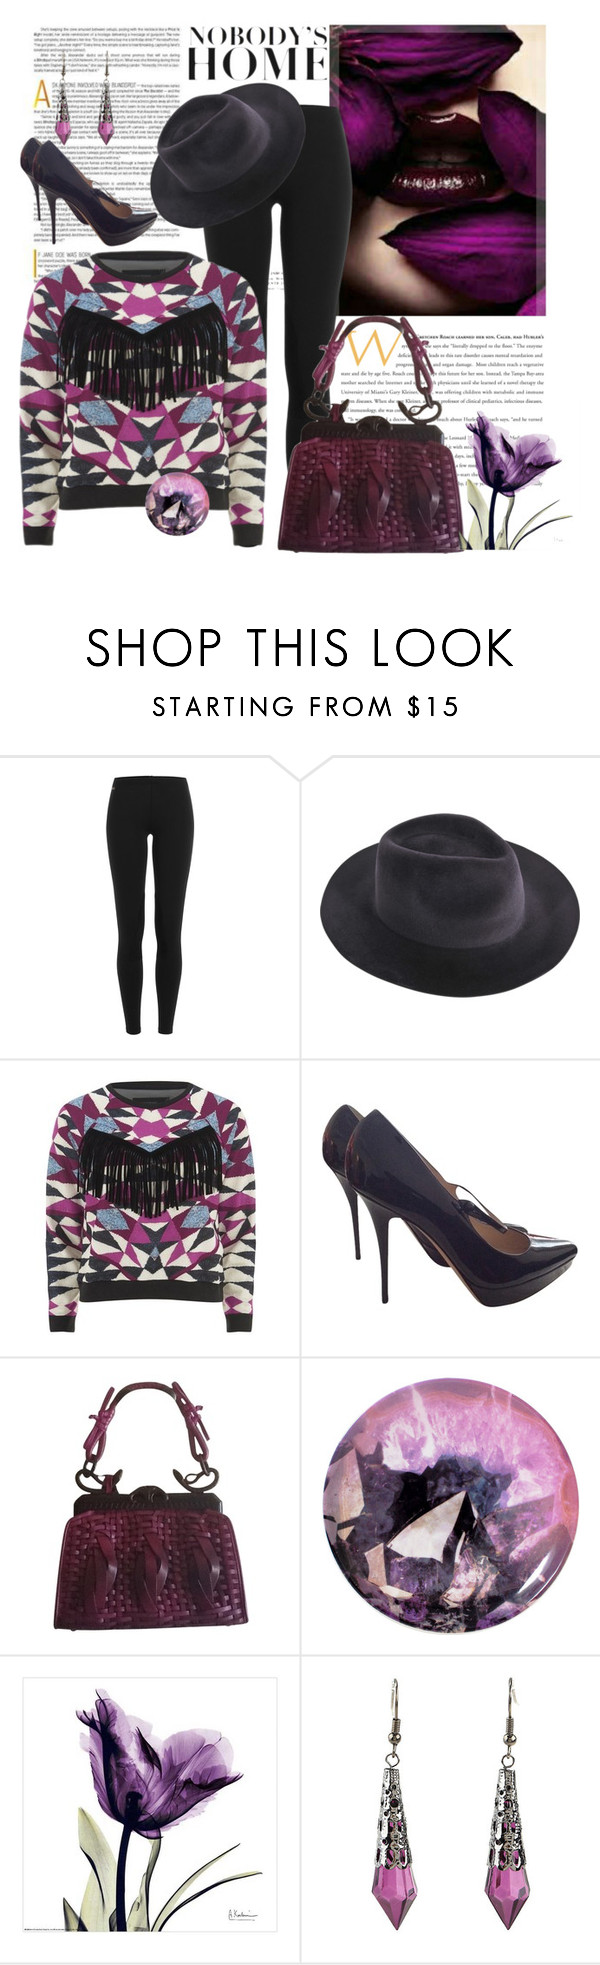 """Fierce & Stylish"" by kiwipeach ❤ liked on Polyvore featuring Polo Ralph Lauren, Larose, MINKPINK, Yves Saint Laurent, Christian Dior and Dot & Bo"